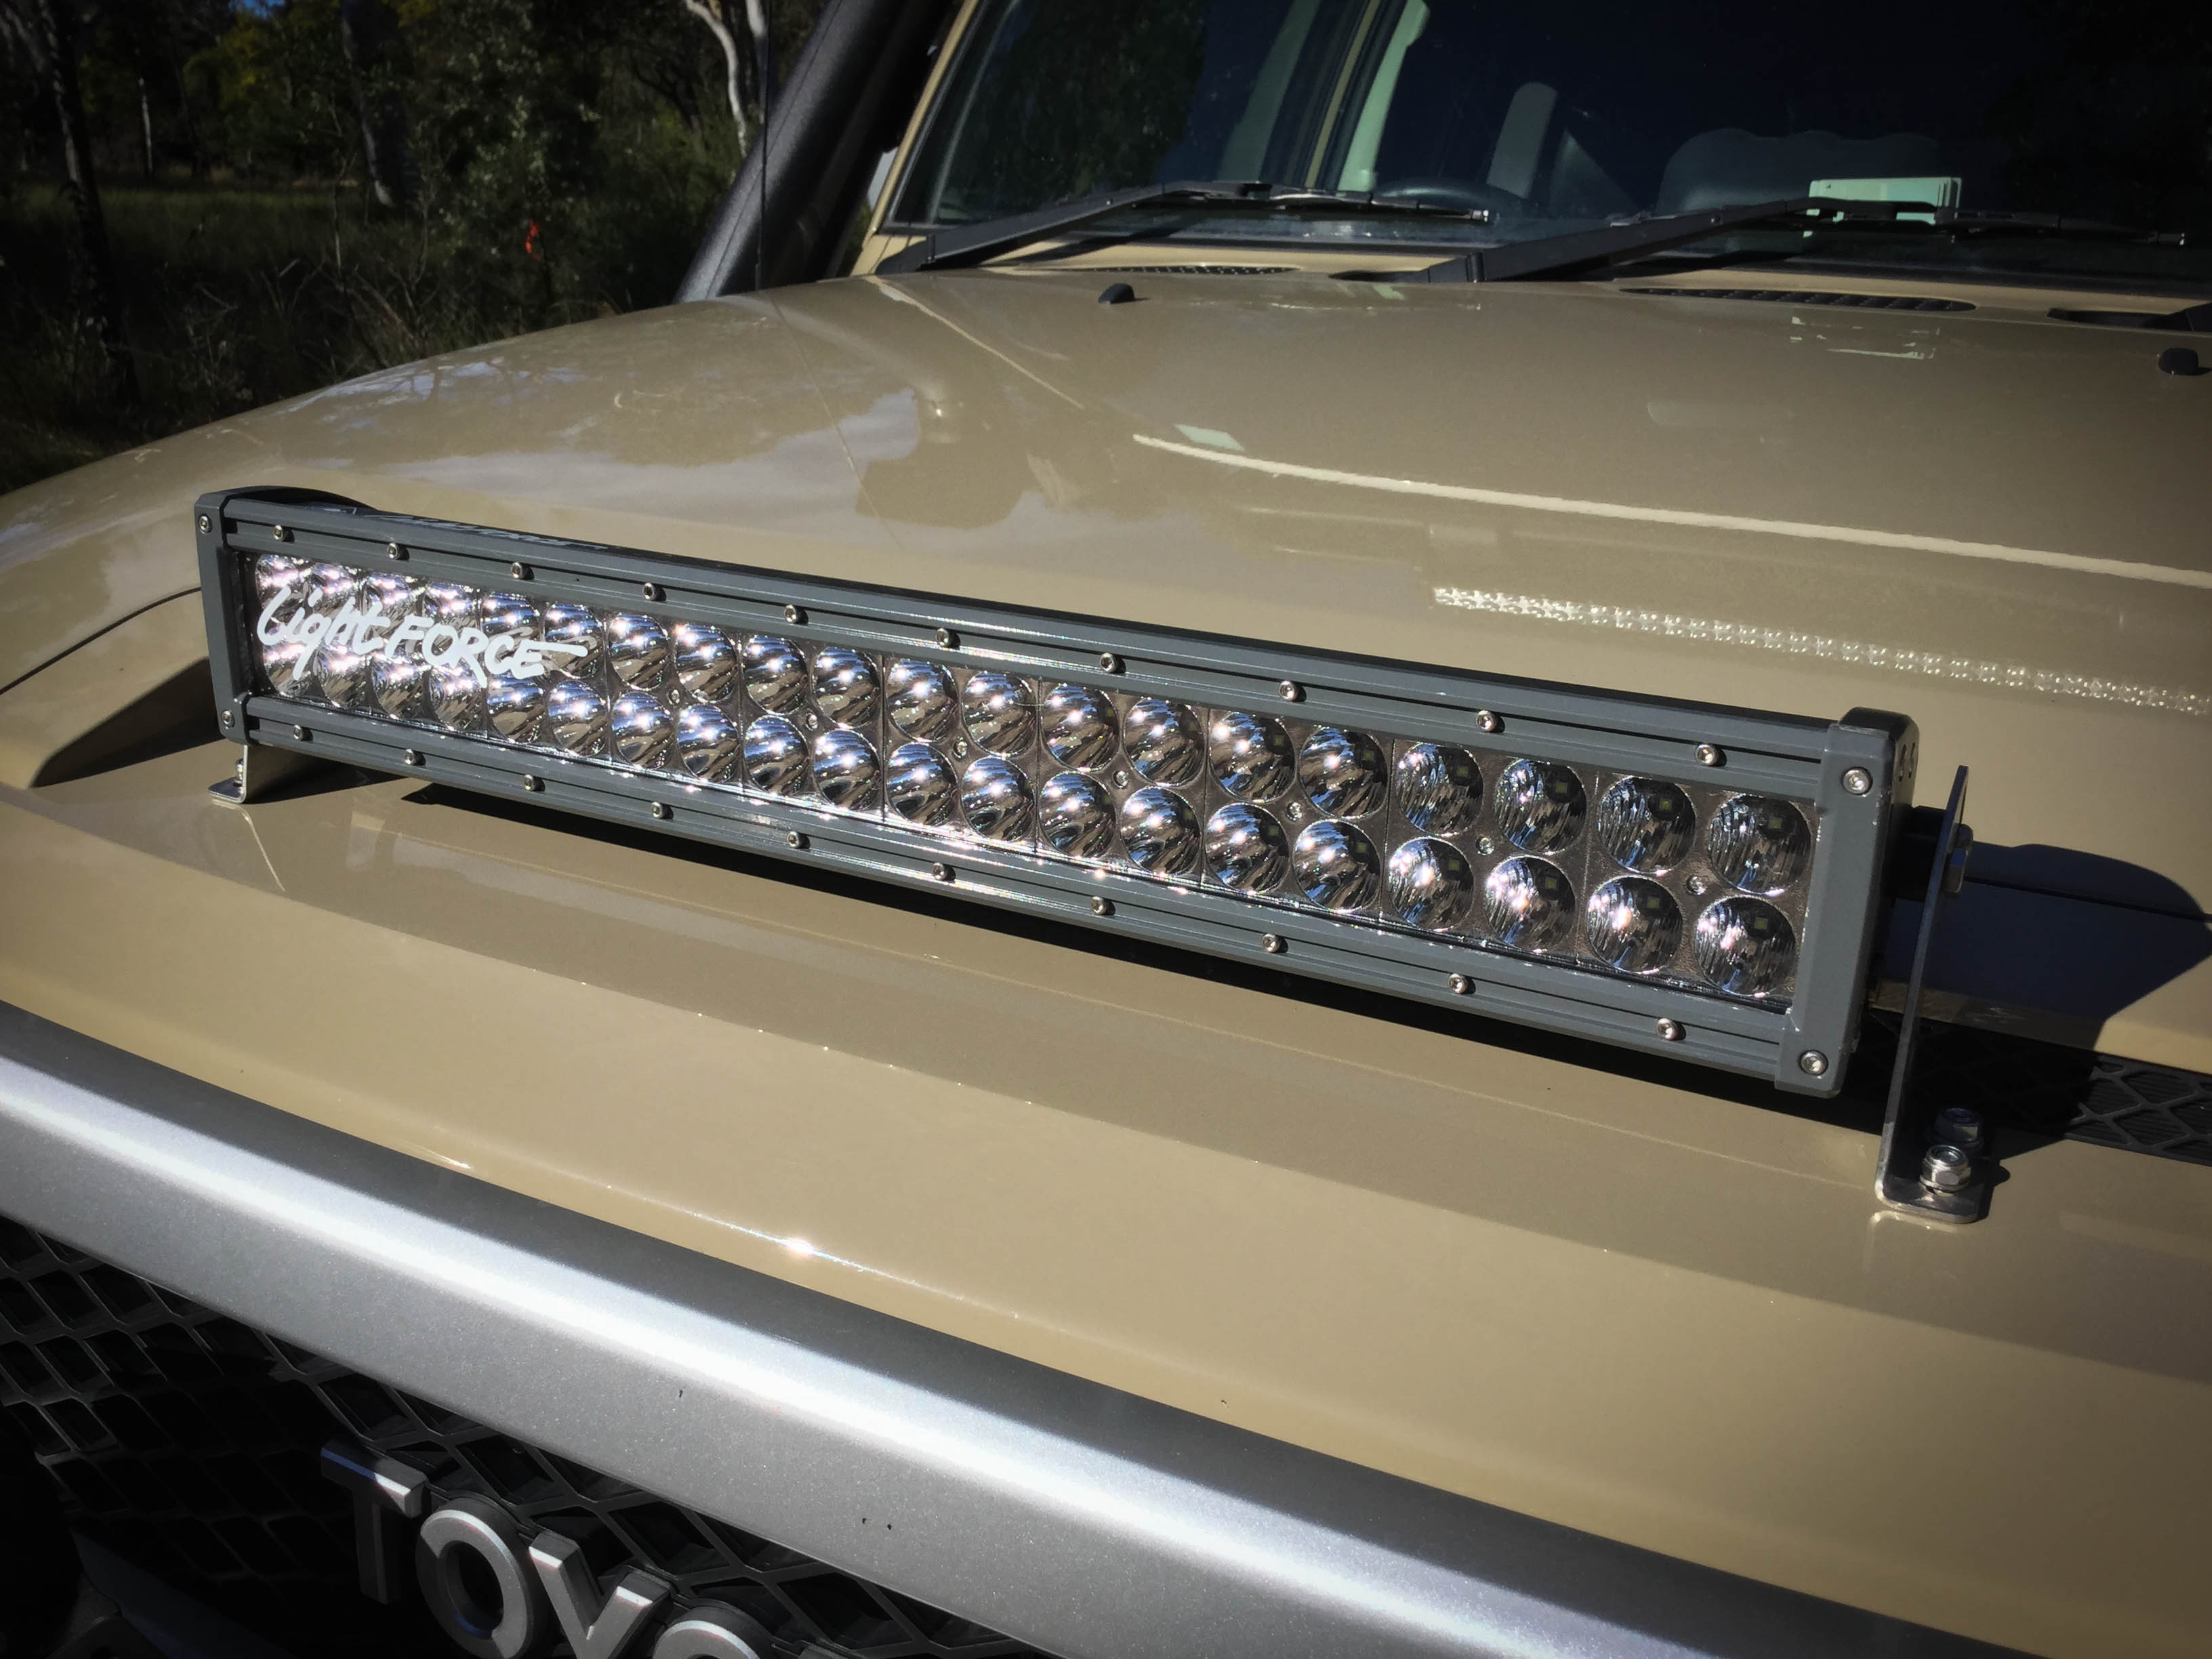 Lightforce gen2 led215 and dual row 20 inch light bar review lightforce 20 inch double row led light bar mozeypictures Image collections